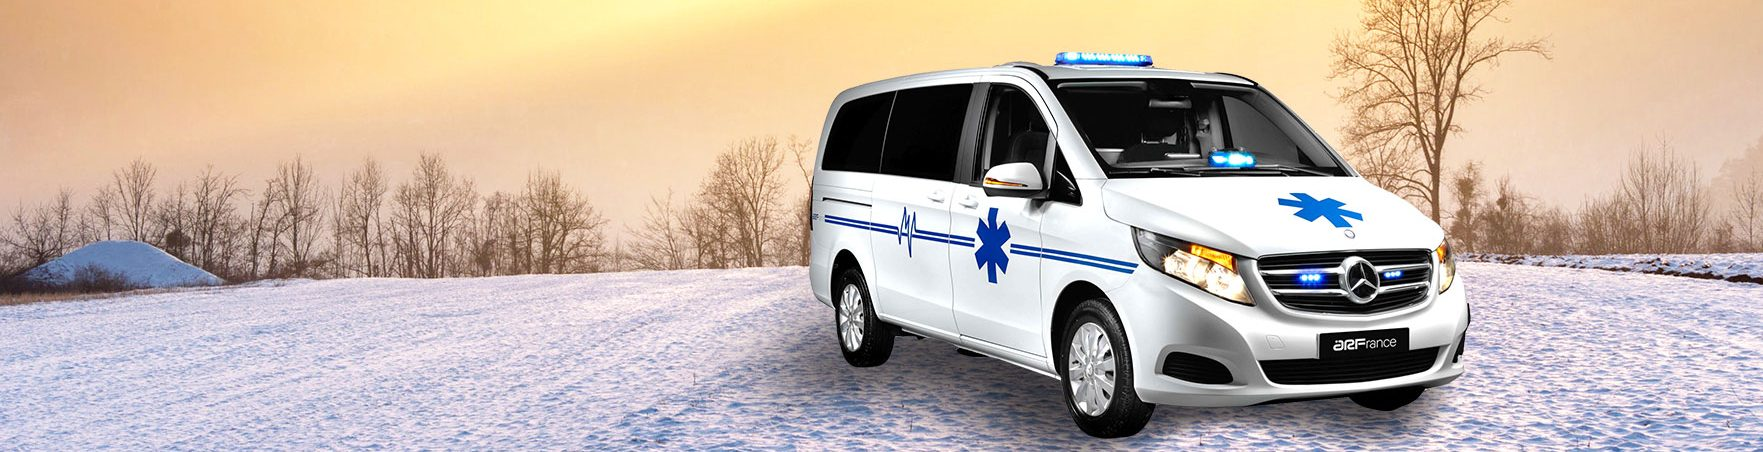 carrossier ambulances